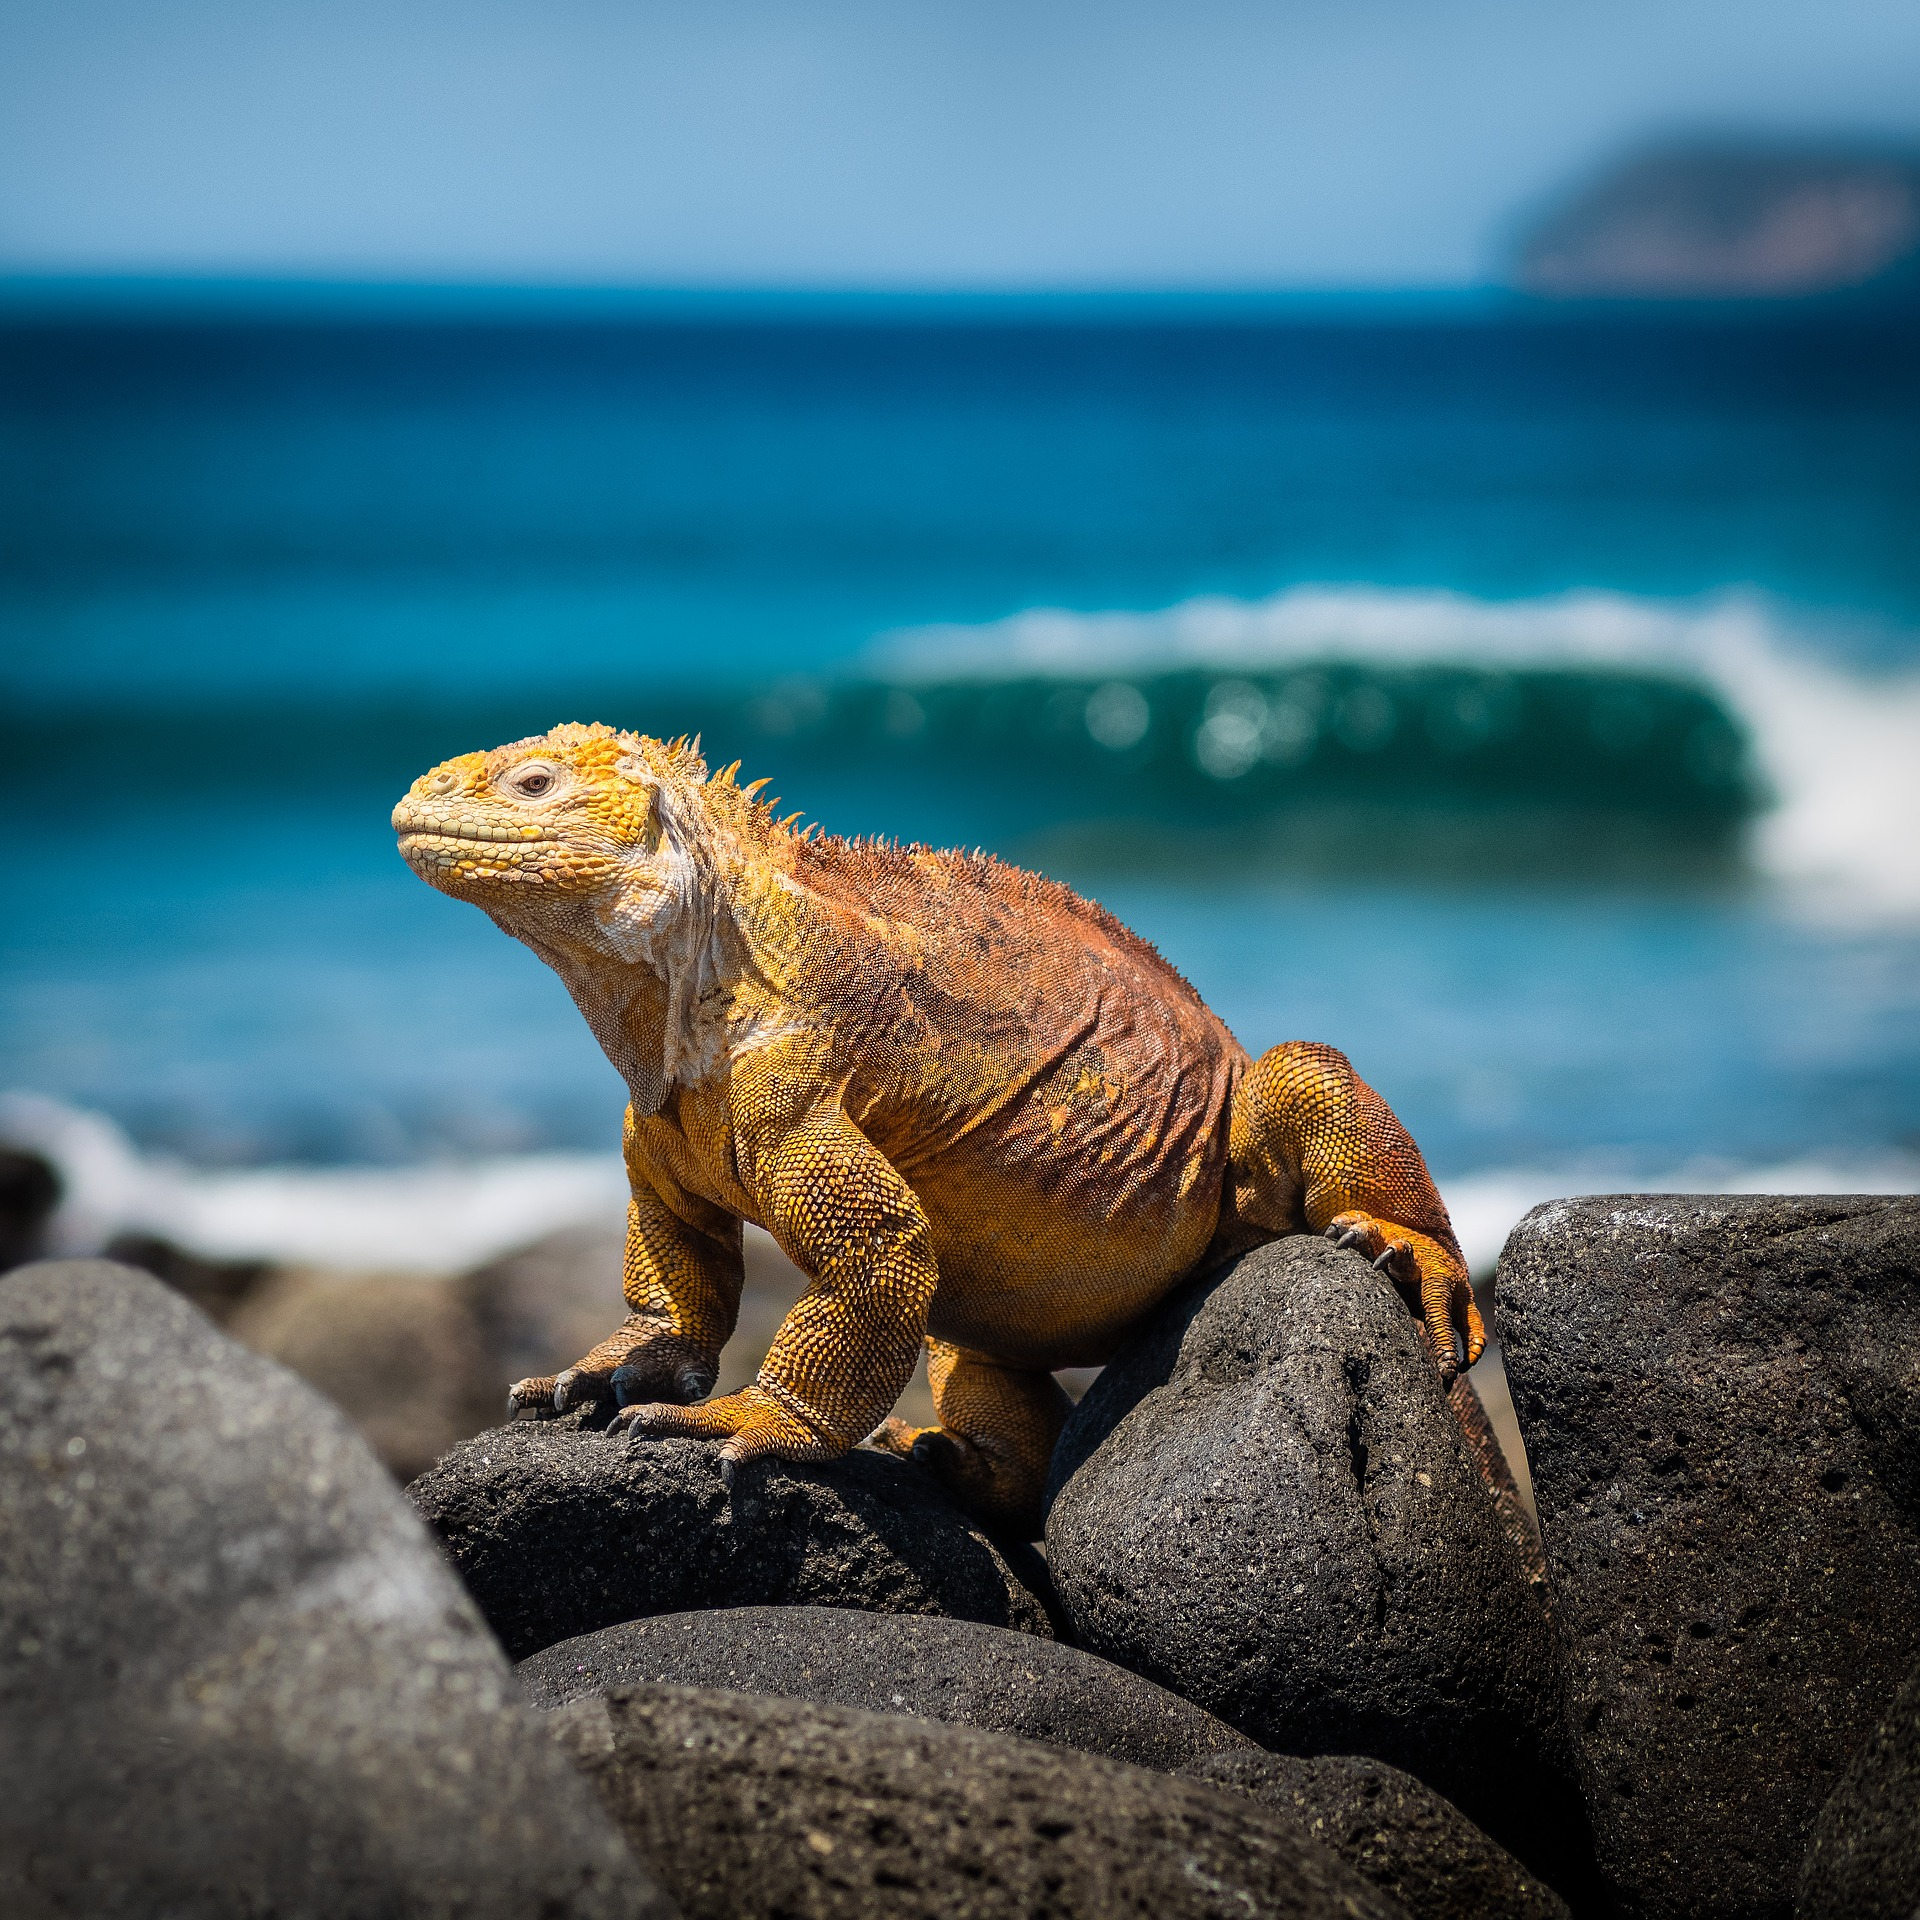 Land Iguana in the Galapagos | Galapagos Wildlife Calendar